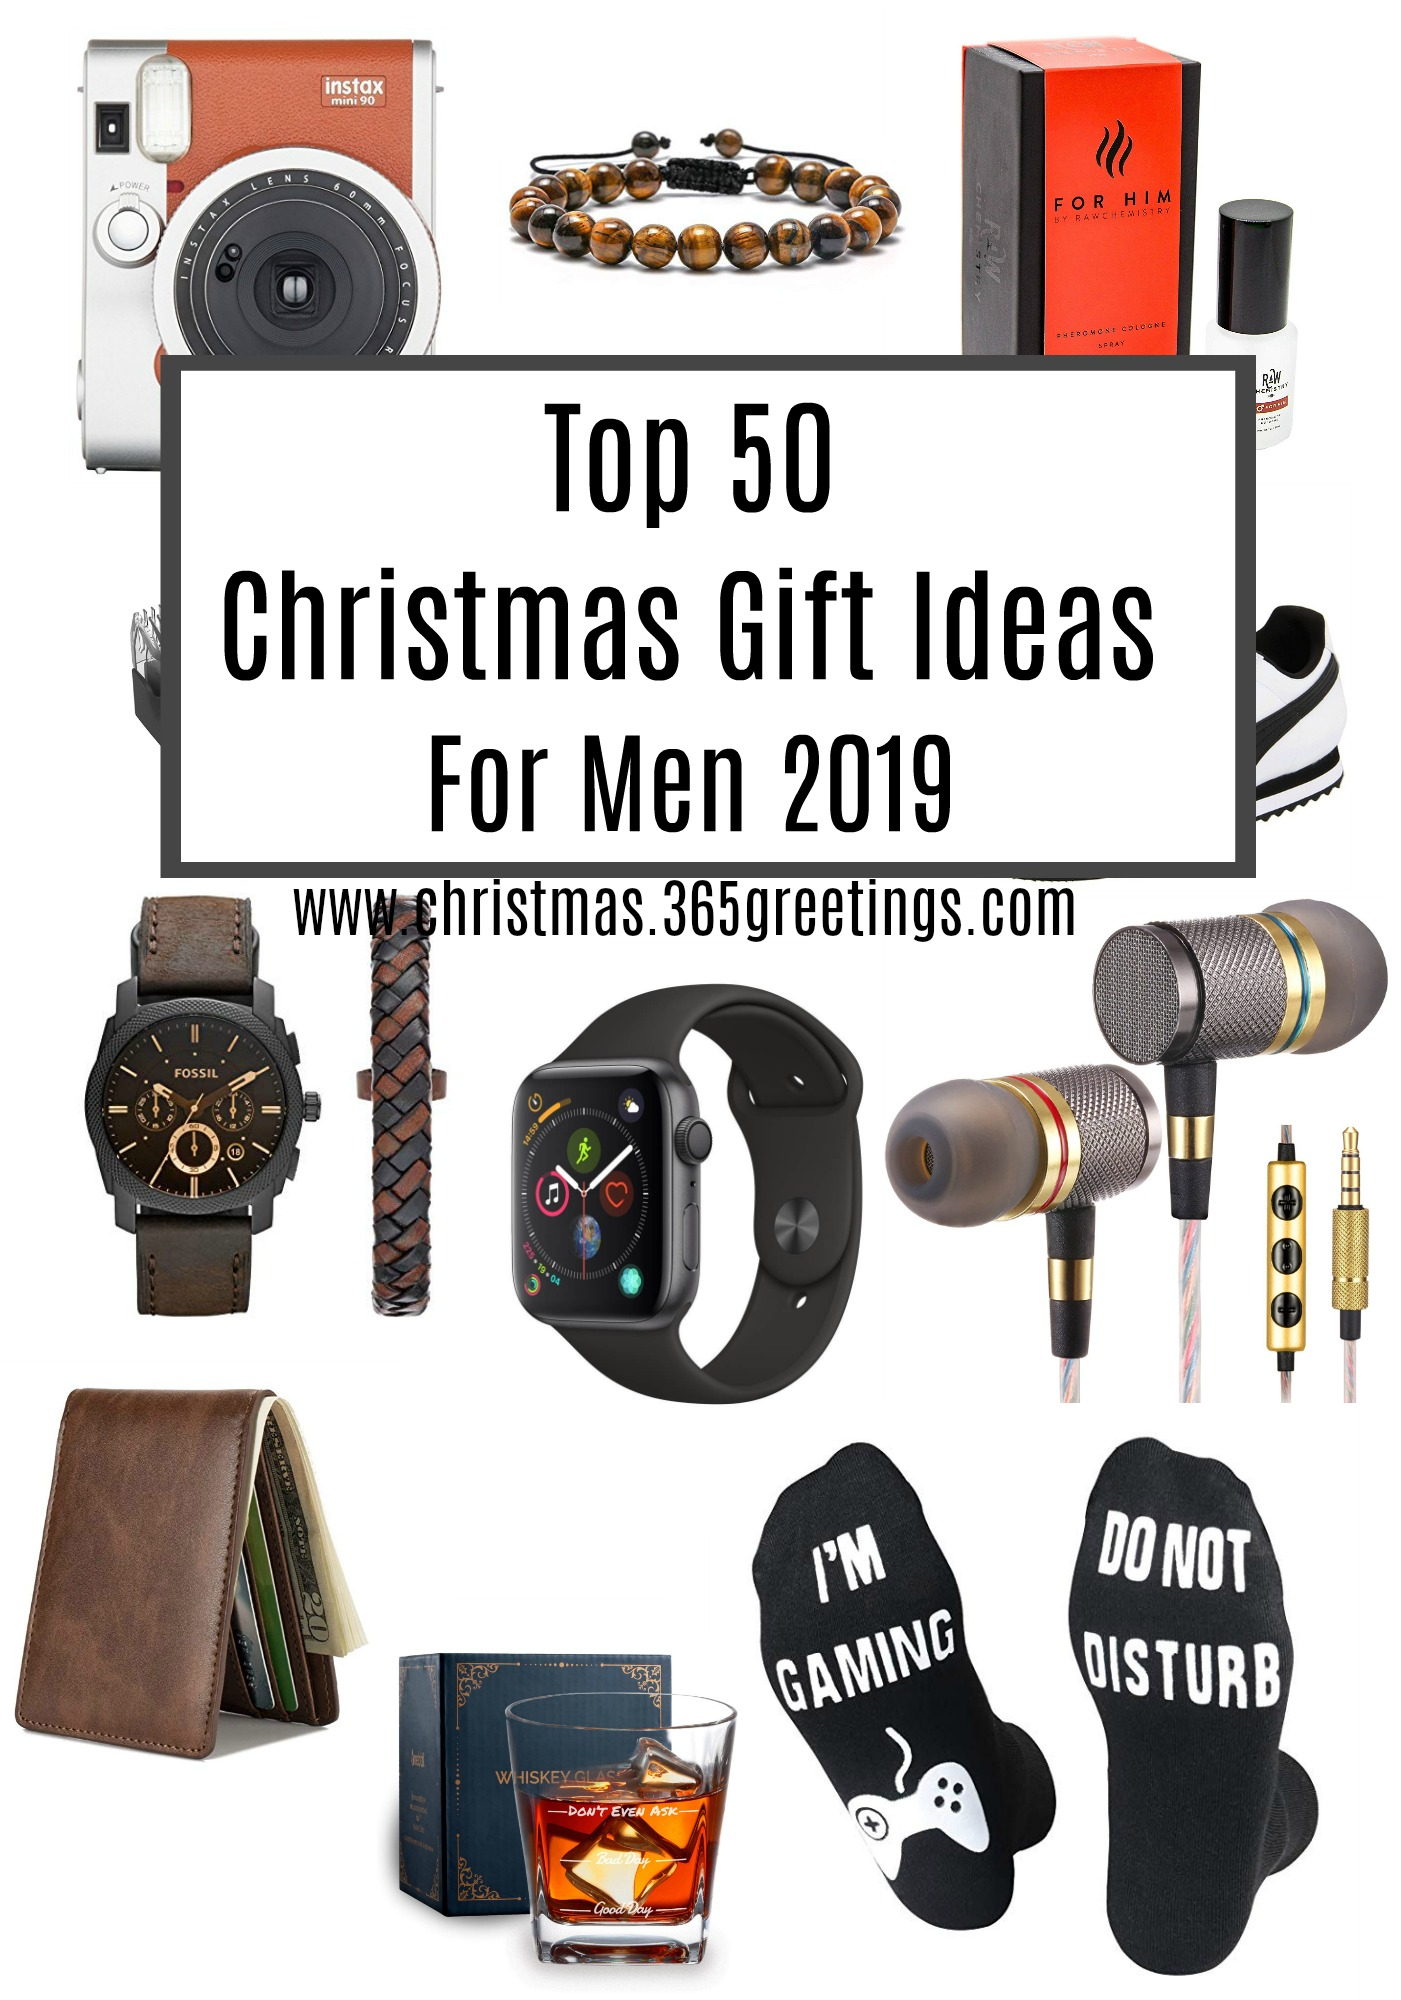 Top 2020 Electronic Christmas Gifts Top Christmas Gifts for Men 2020   Christmas Celebration   All